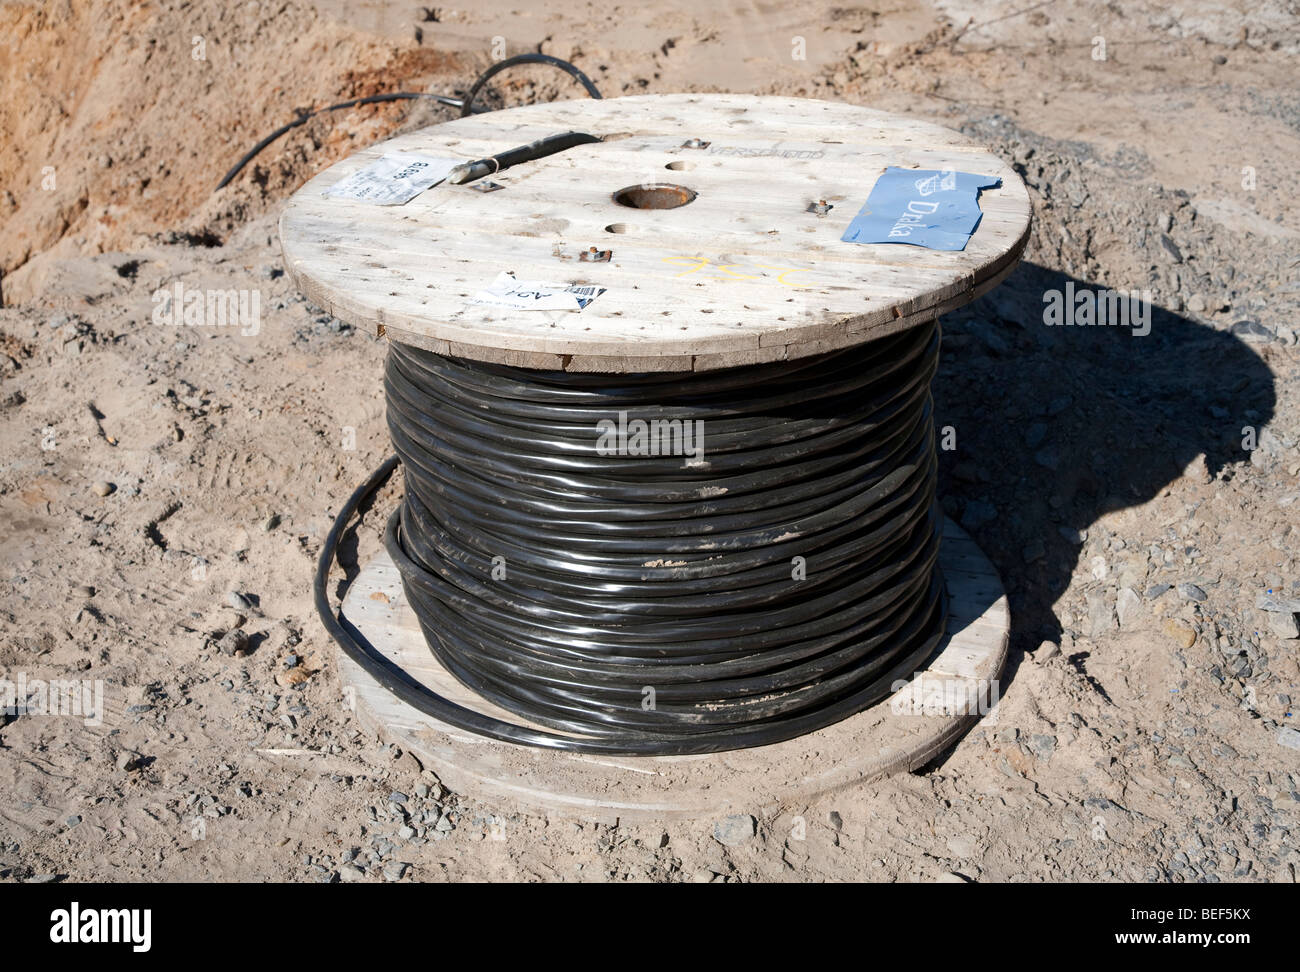 Spool Of Electric Wire Stock Photos & Spool Of Electric Wire Stock ...